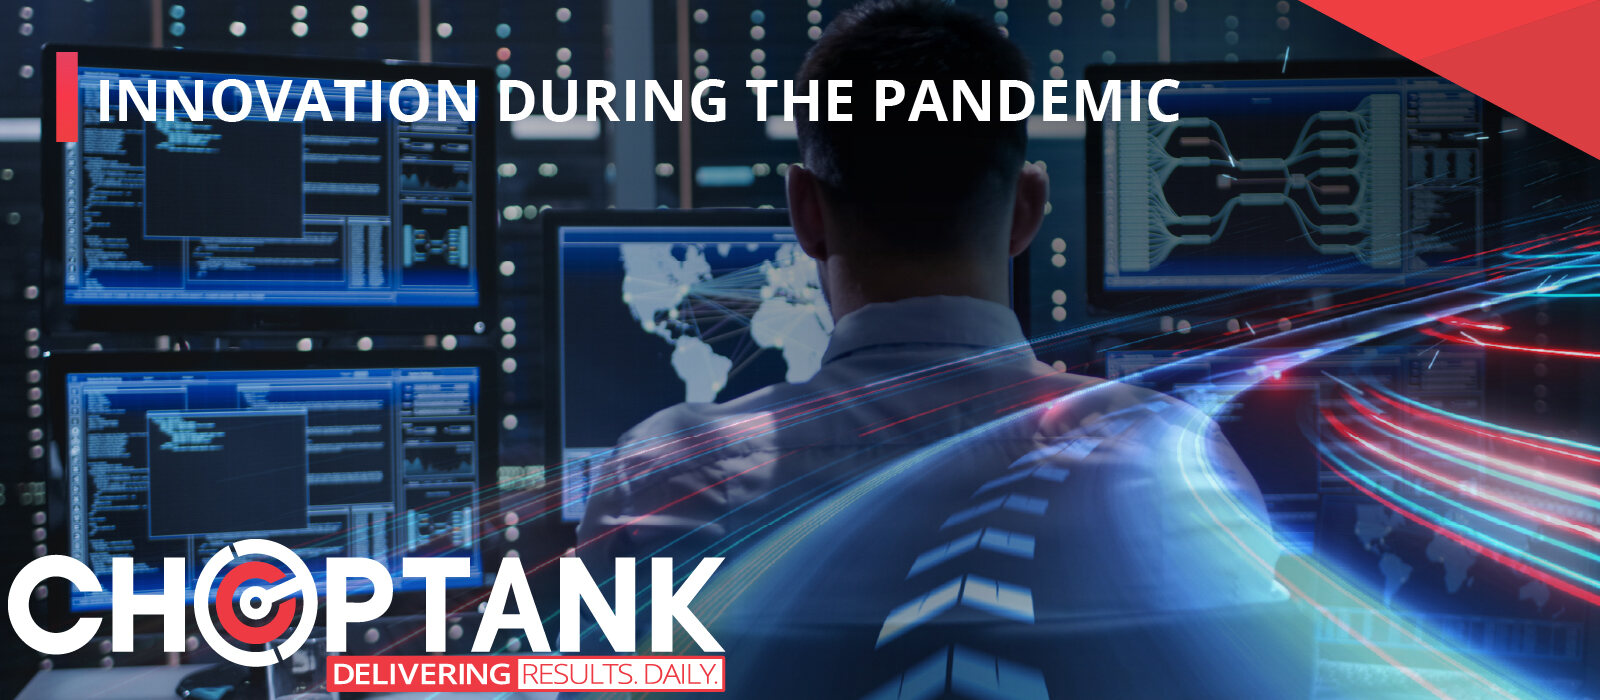 Innovation during the pandemic